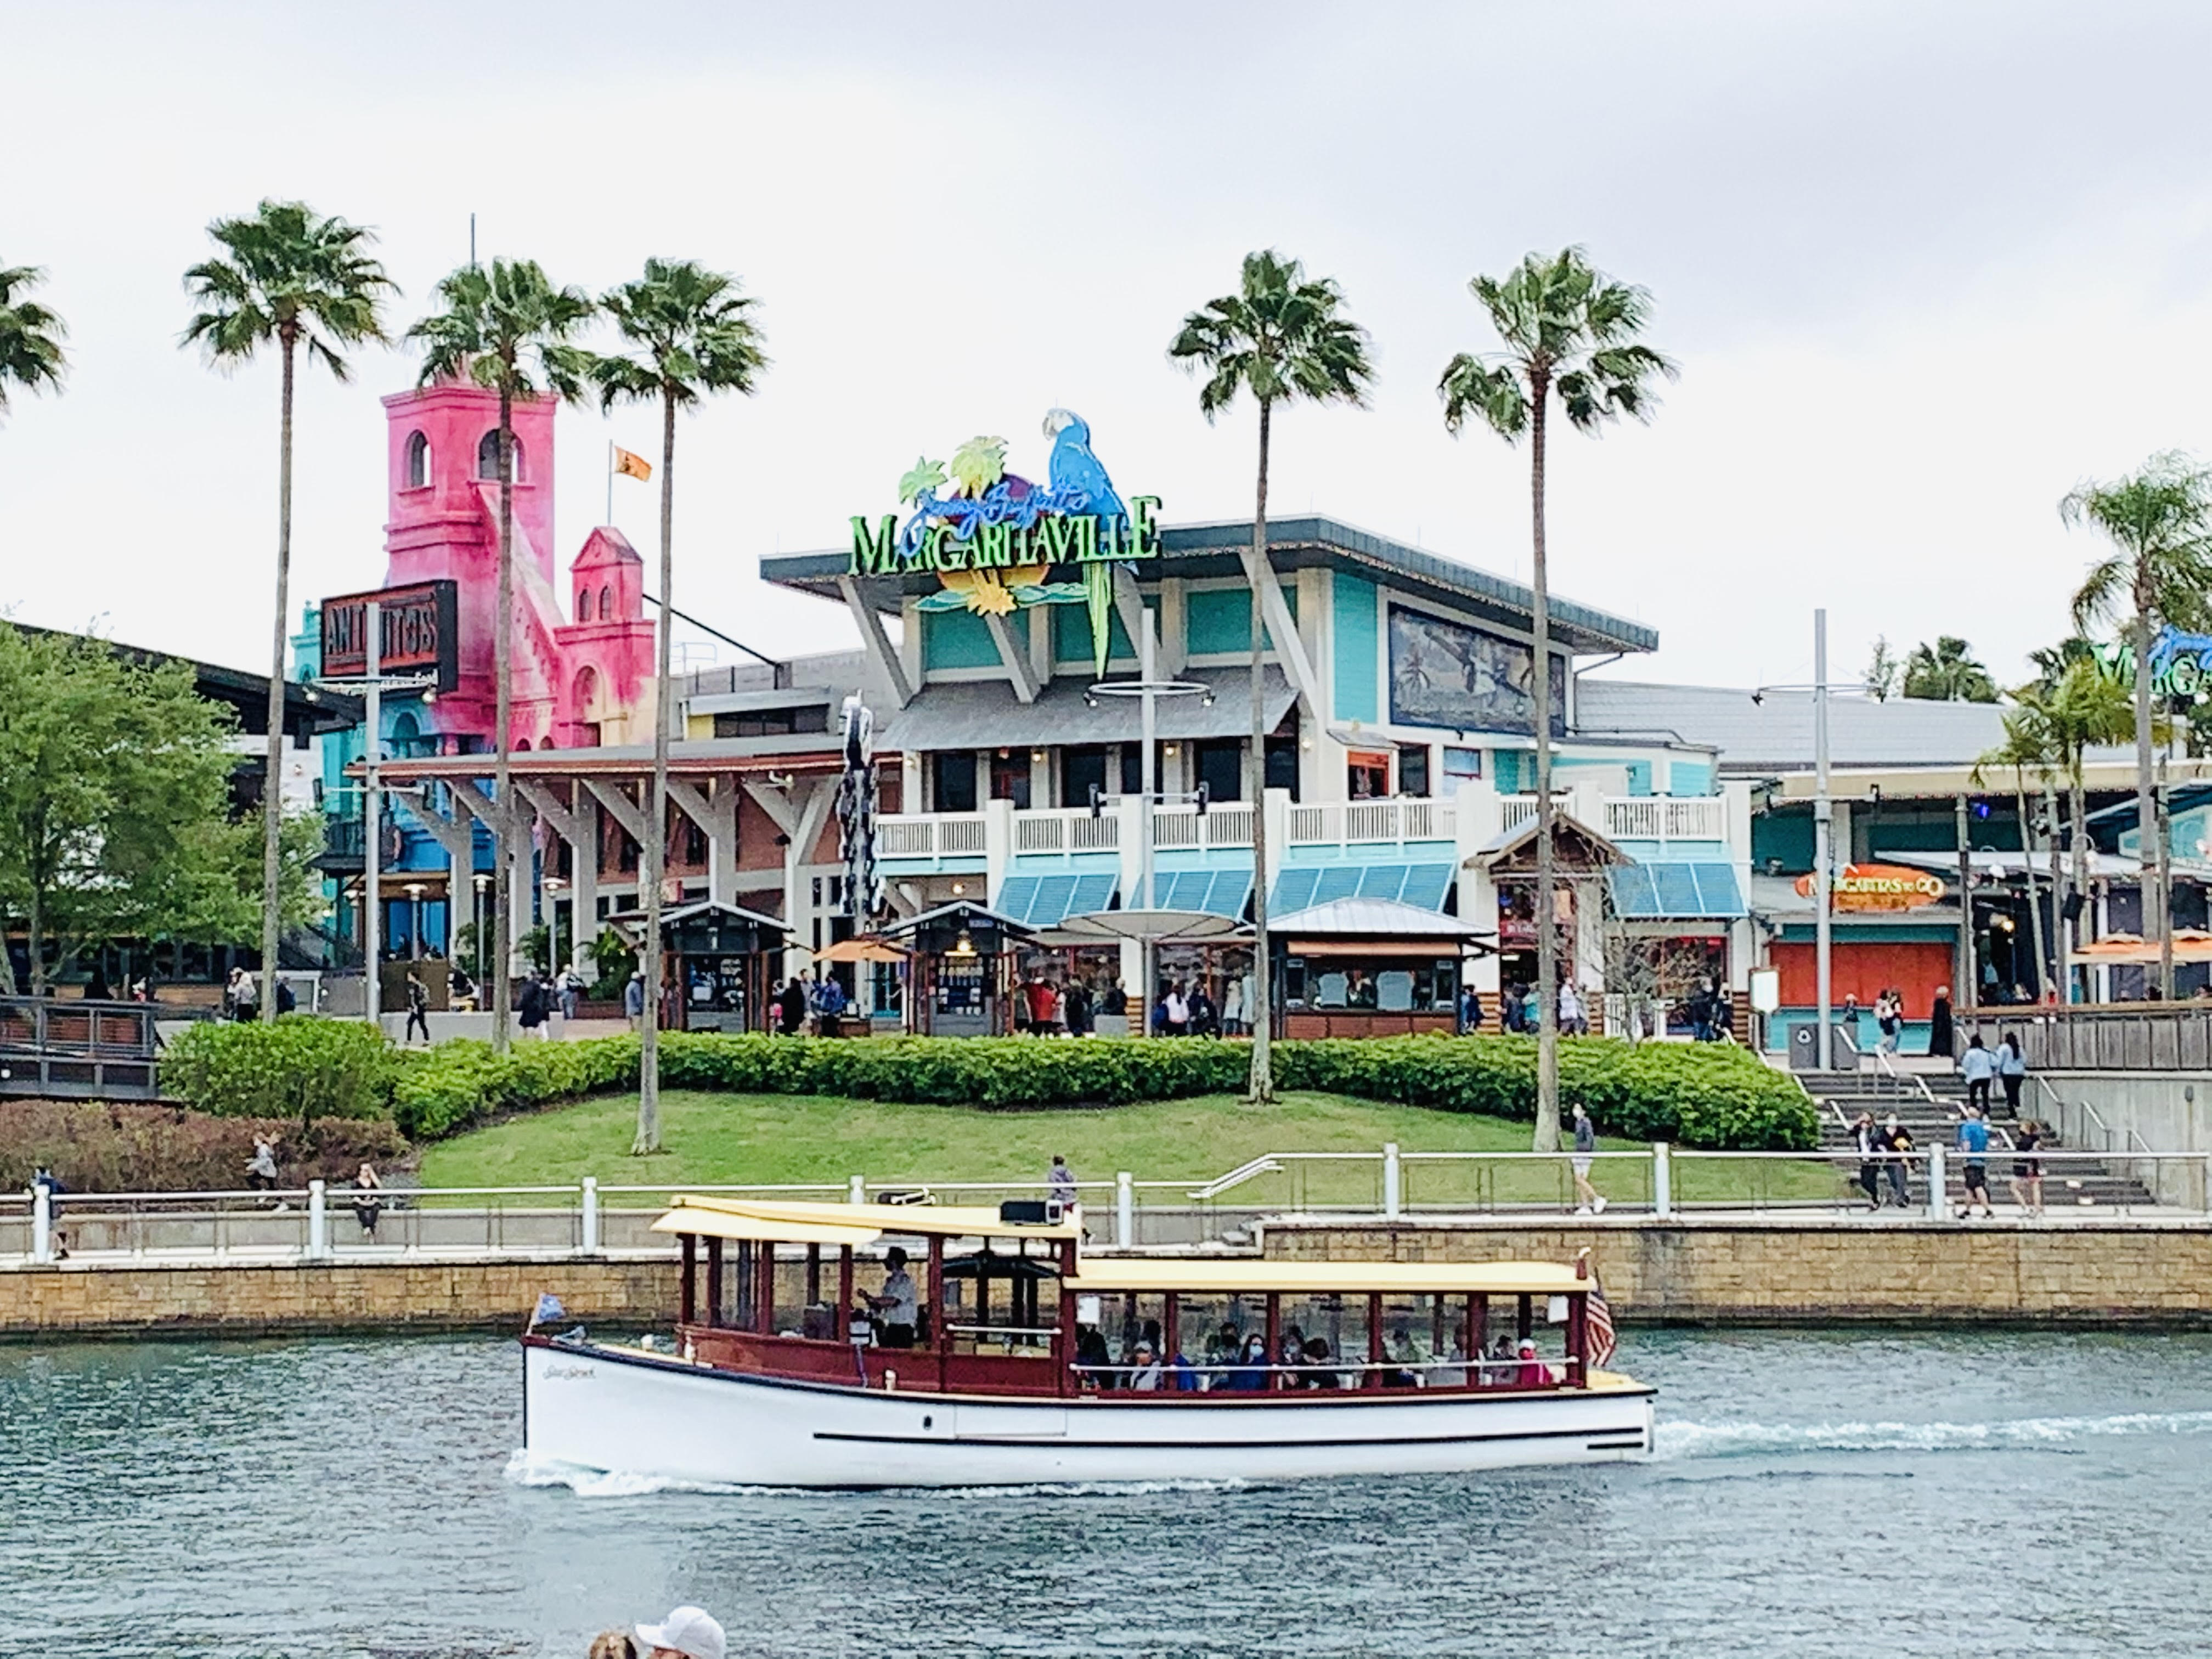 The 7 best restaurants in Citywalk ranked by top U.S. family travel blog, Travel With A Plan! (Margaritaville)